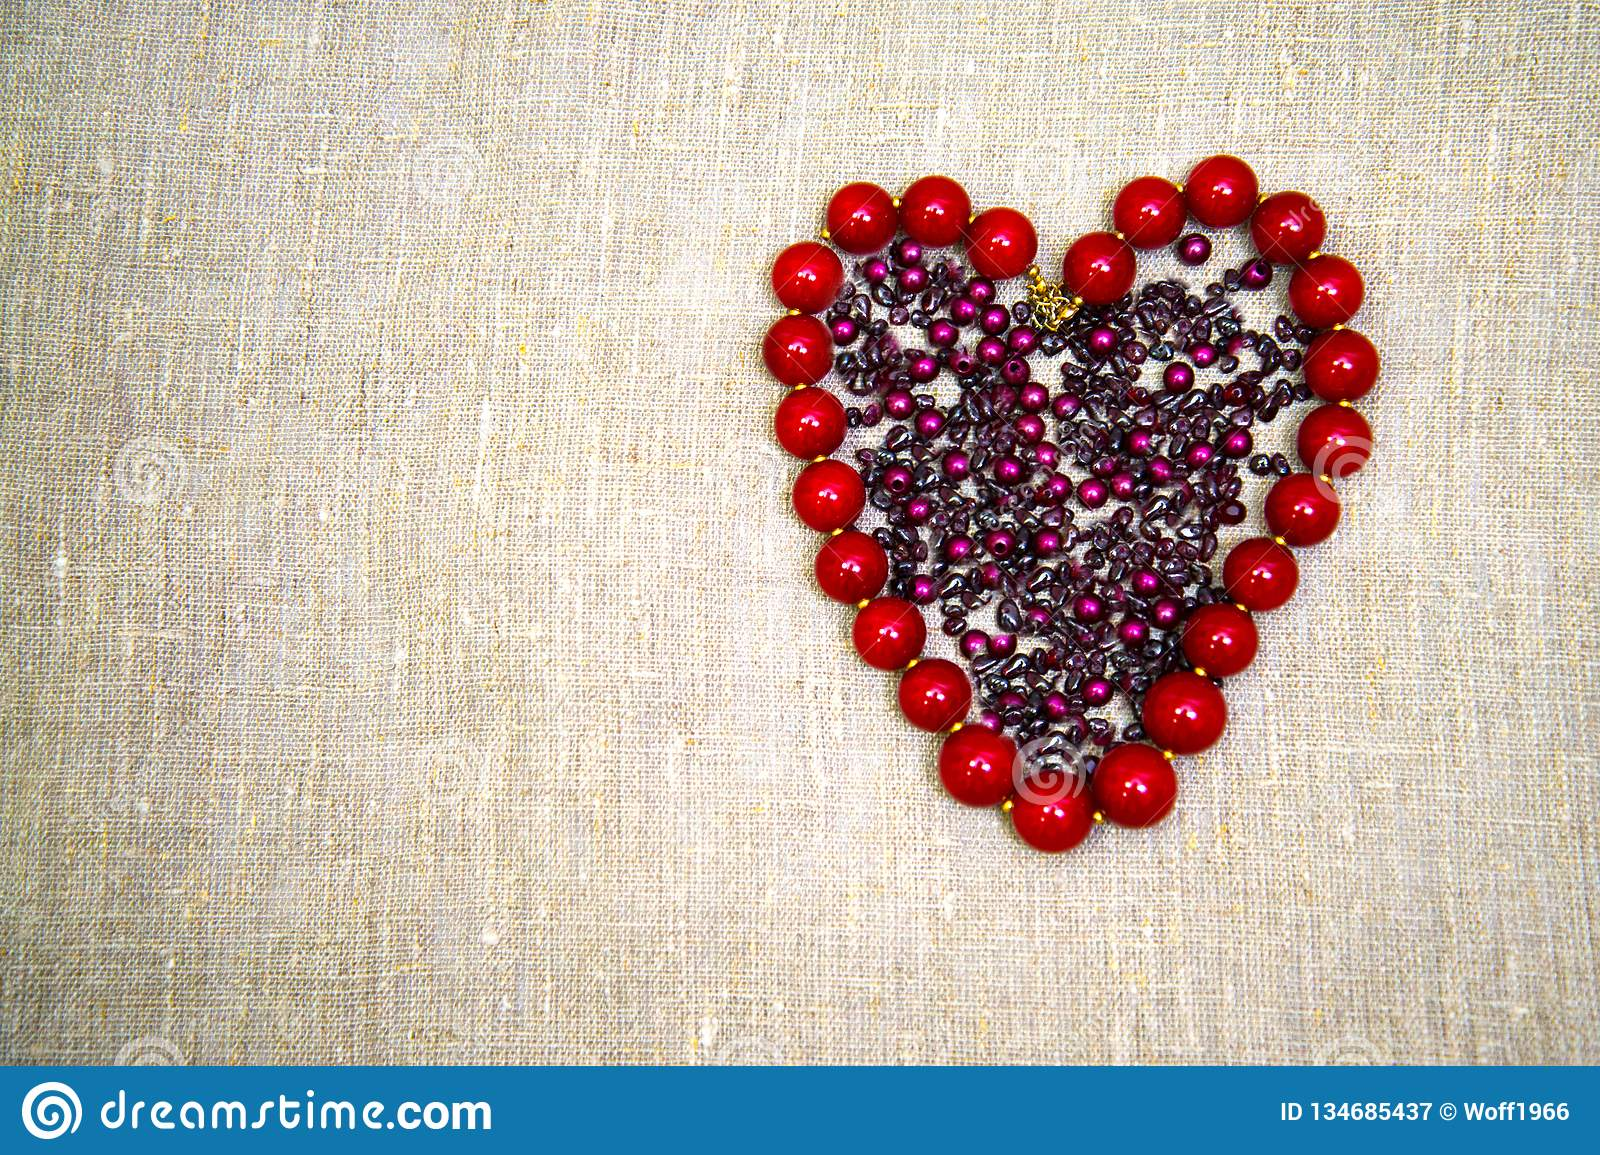 Beads in the shape of a heart